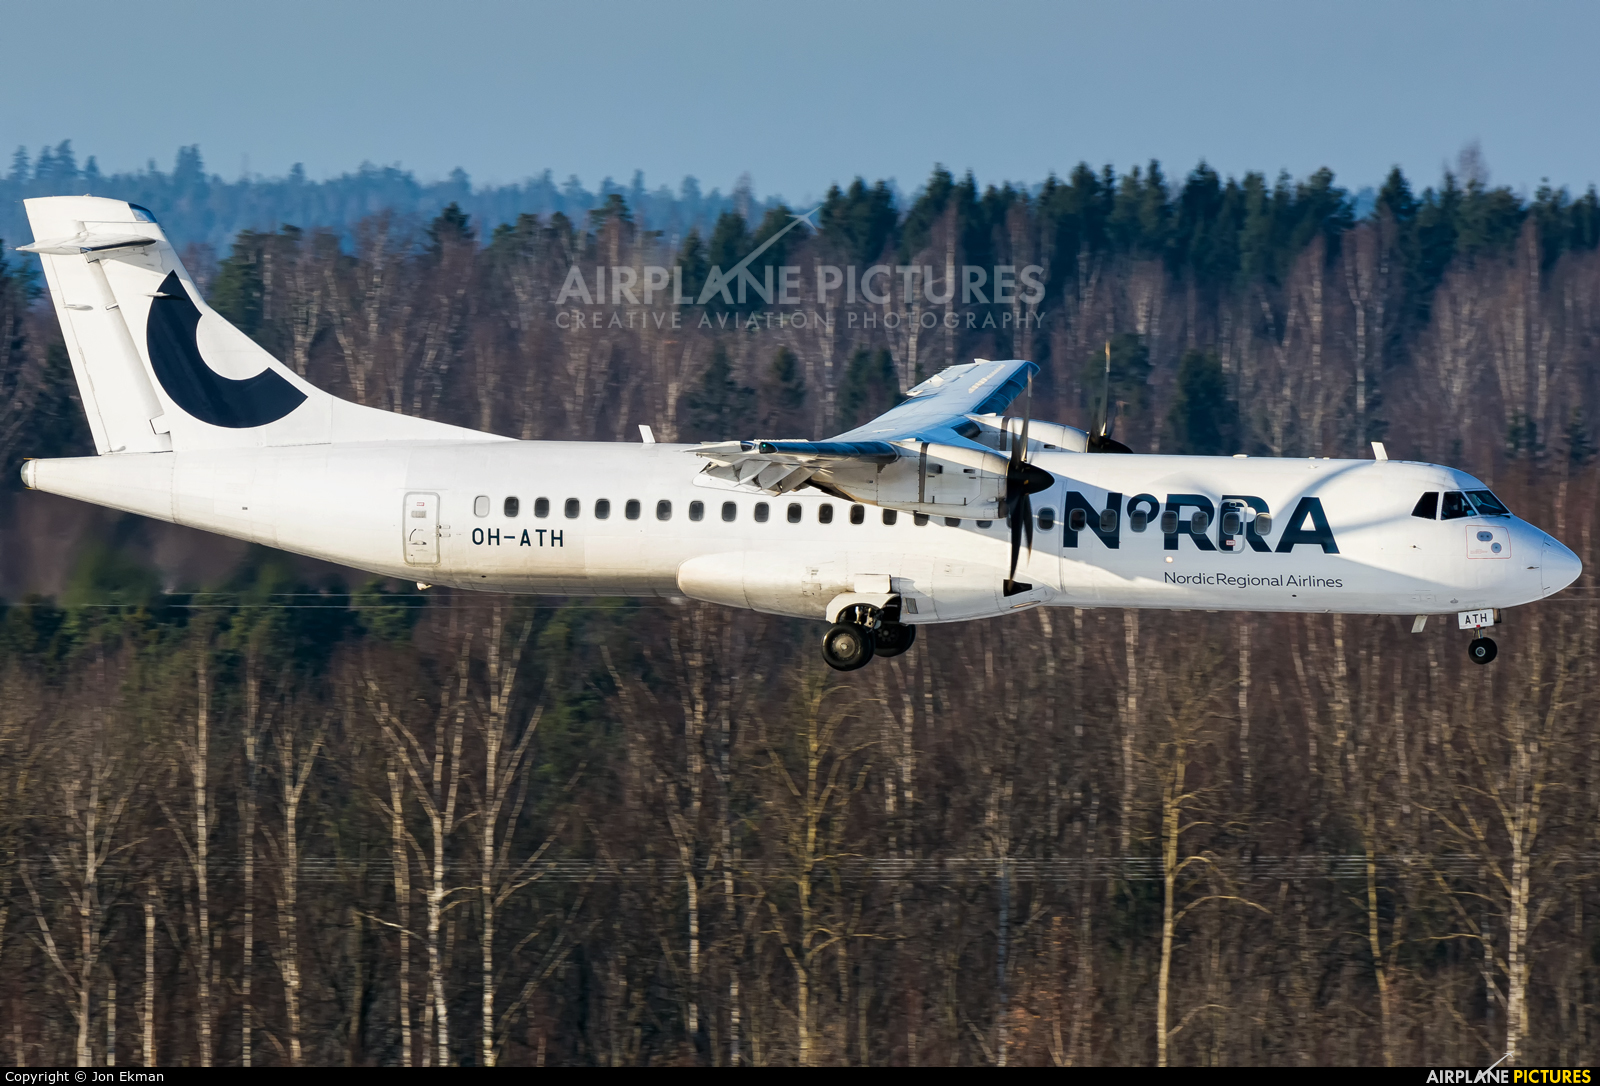 NoRRA - Nordic Regional Airlines OH-ATH aircraft at Helsinki - Vantaa